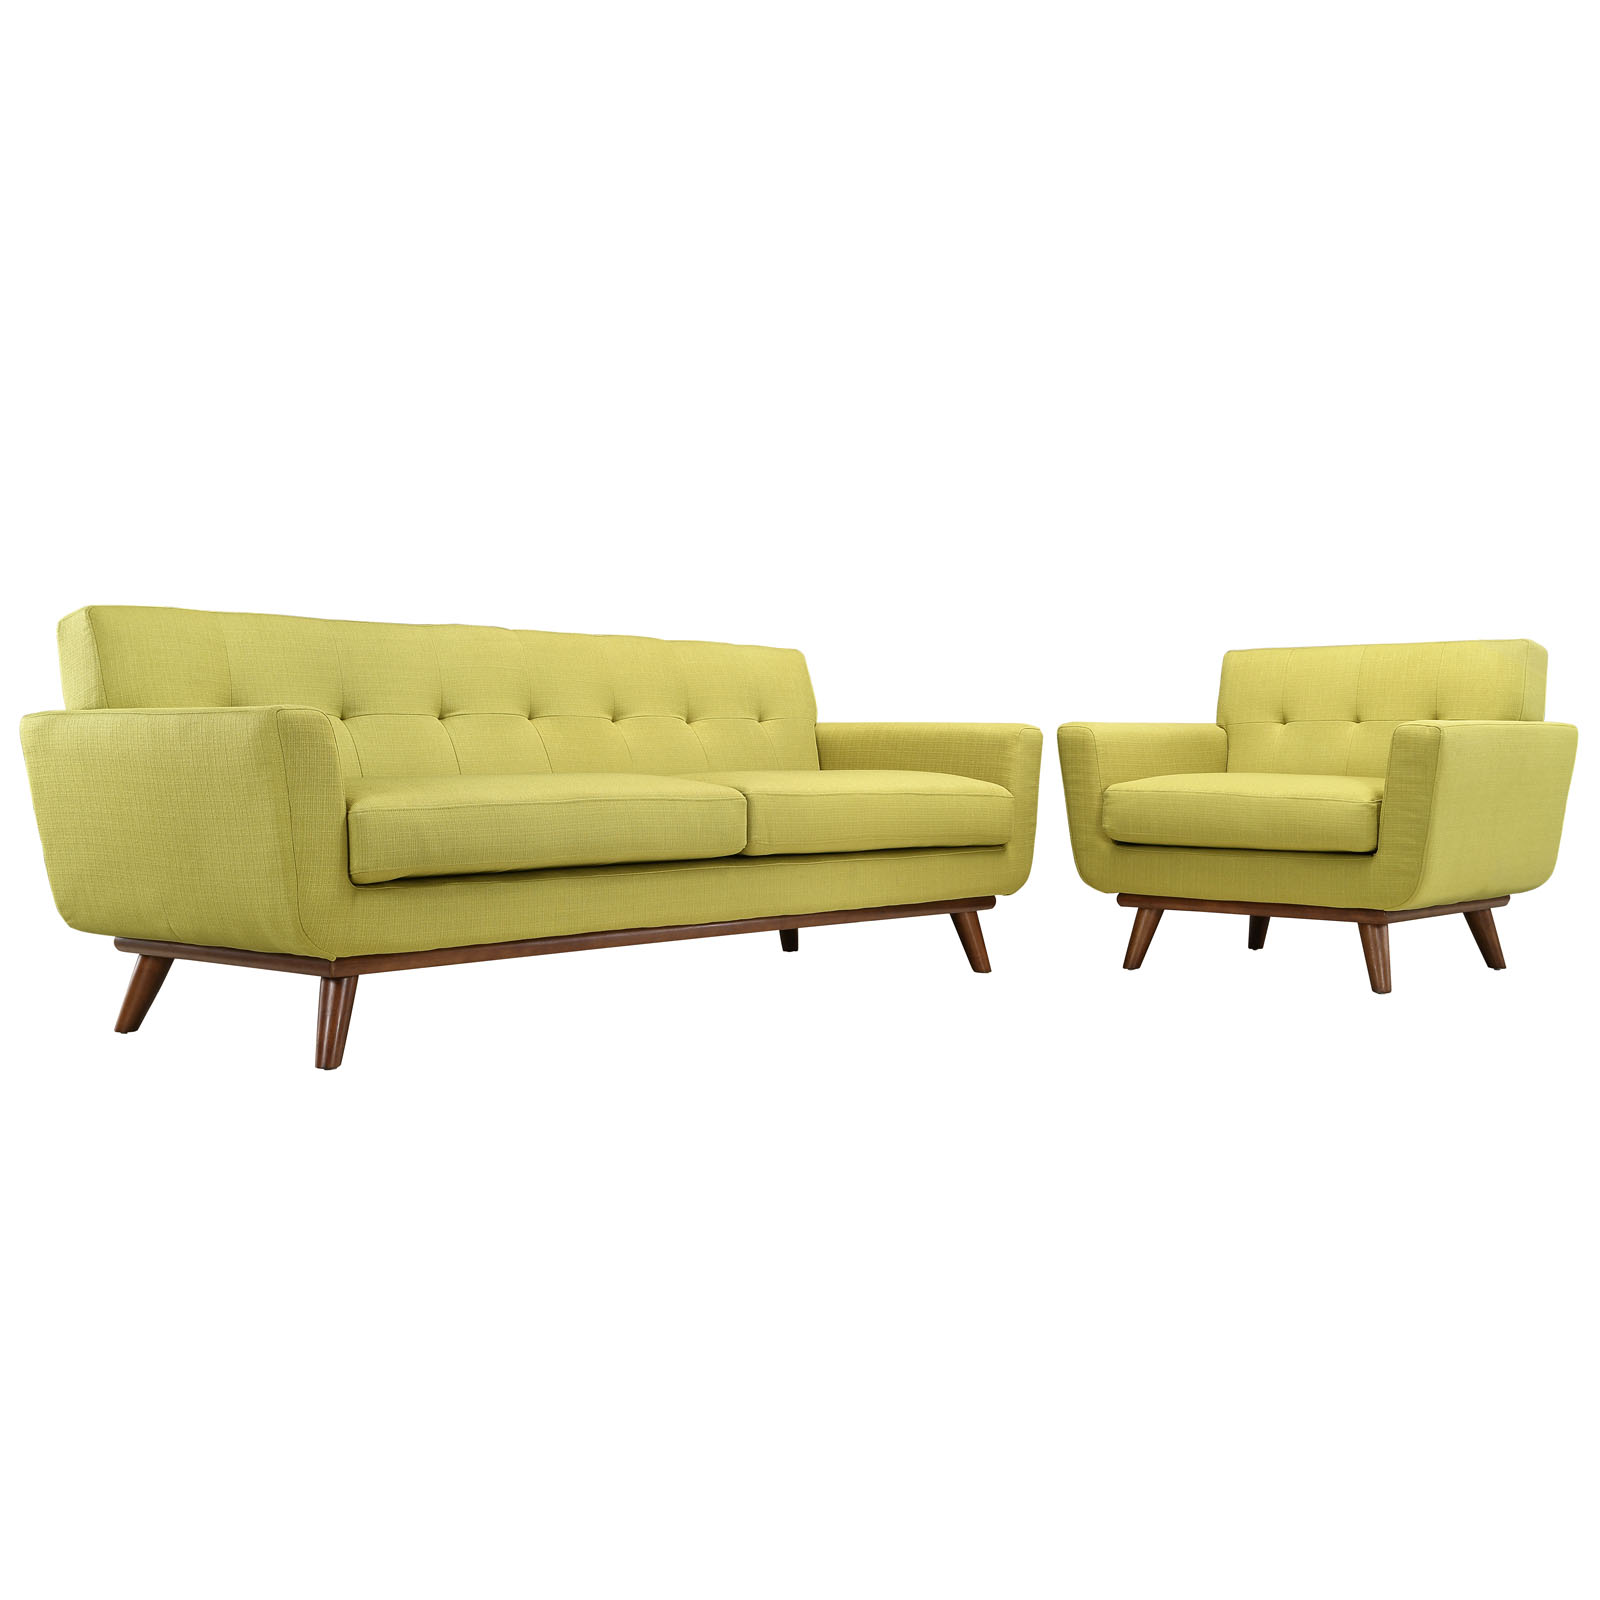 Modern Contemporary Living Room Armchair and Sofa Set of Two Green